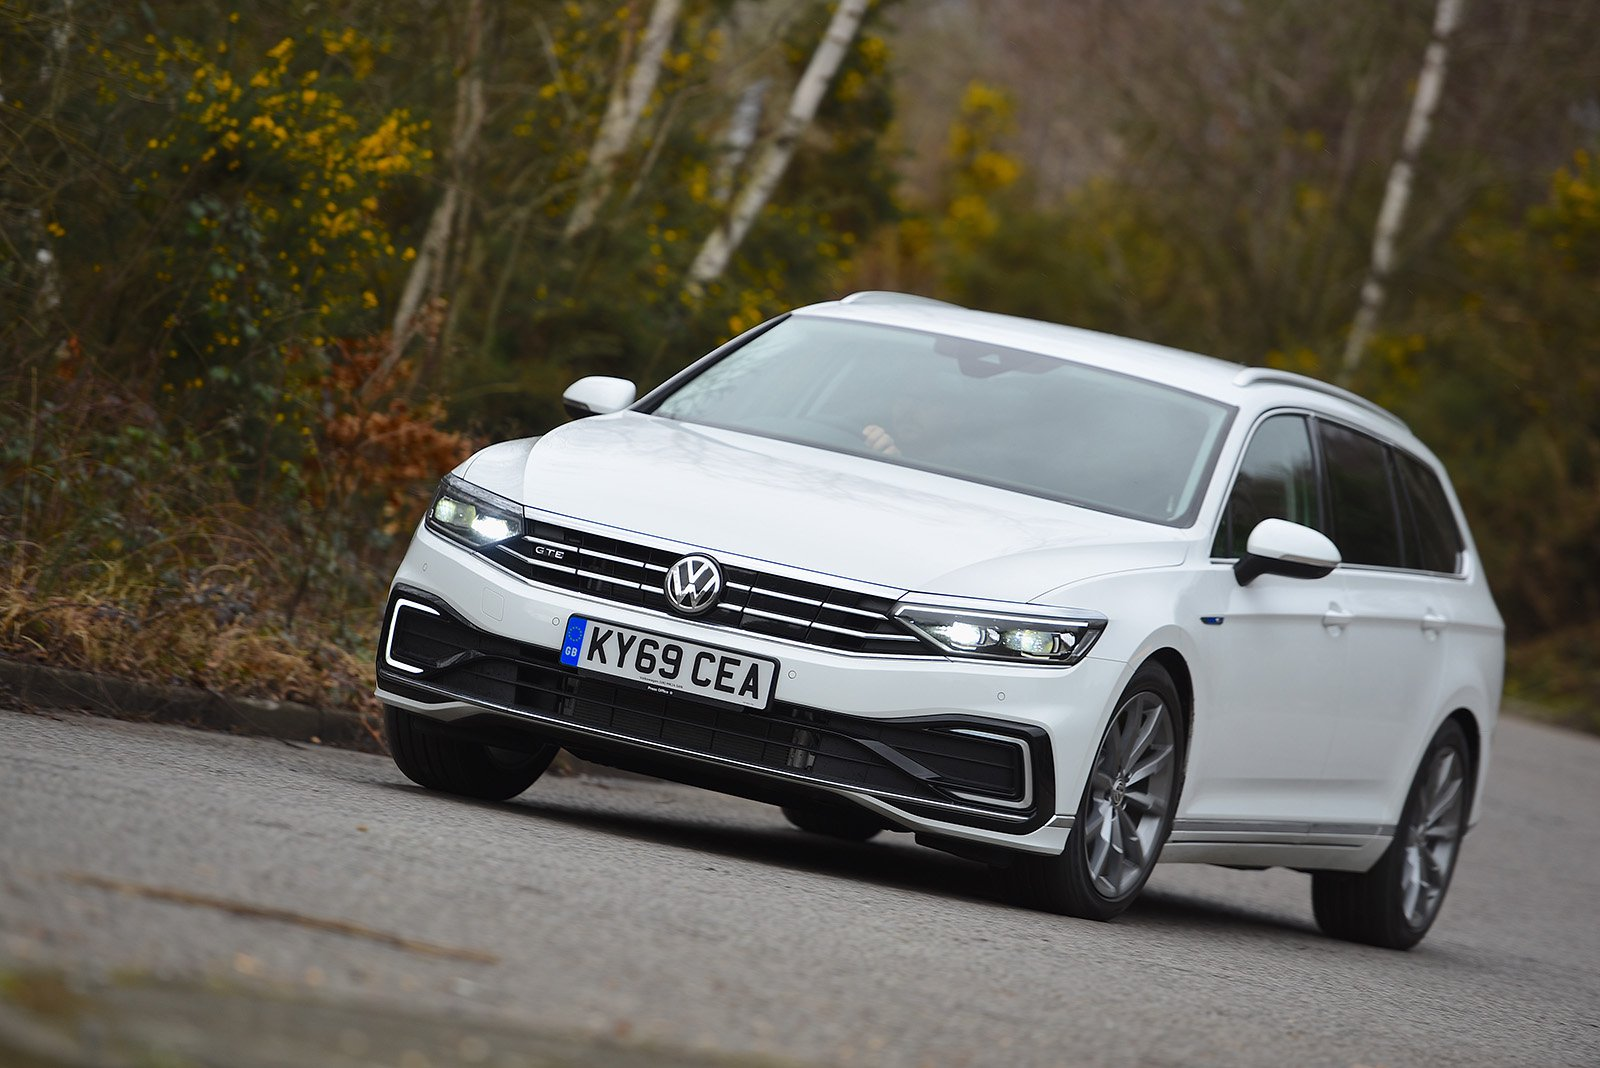 VW Passat GTE long-term test review